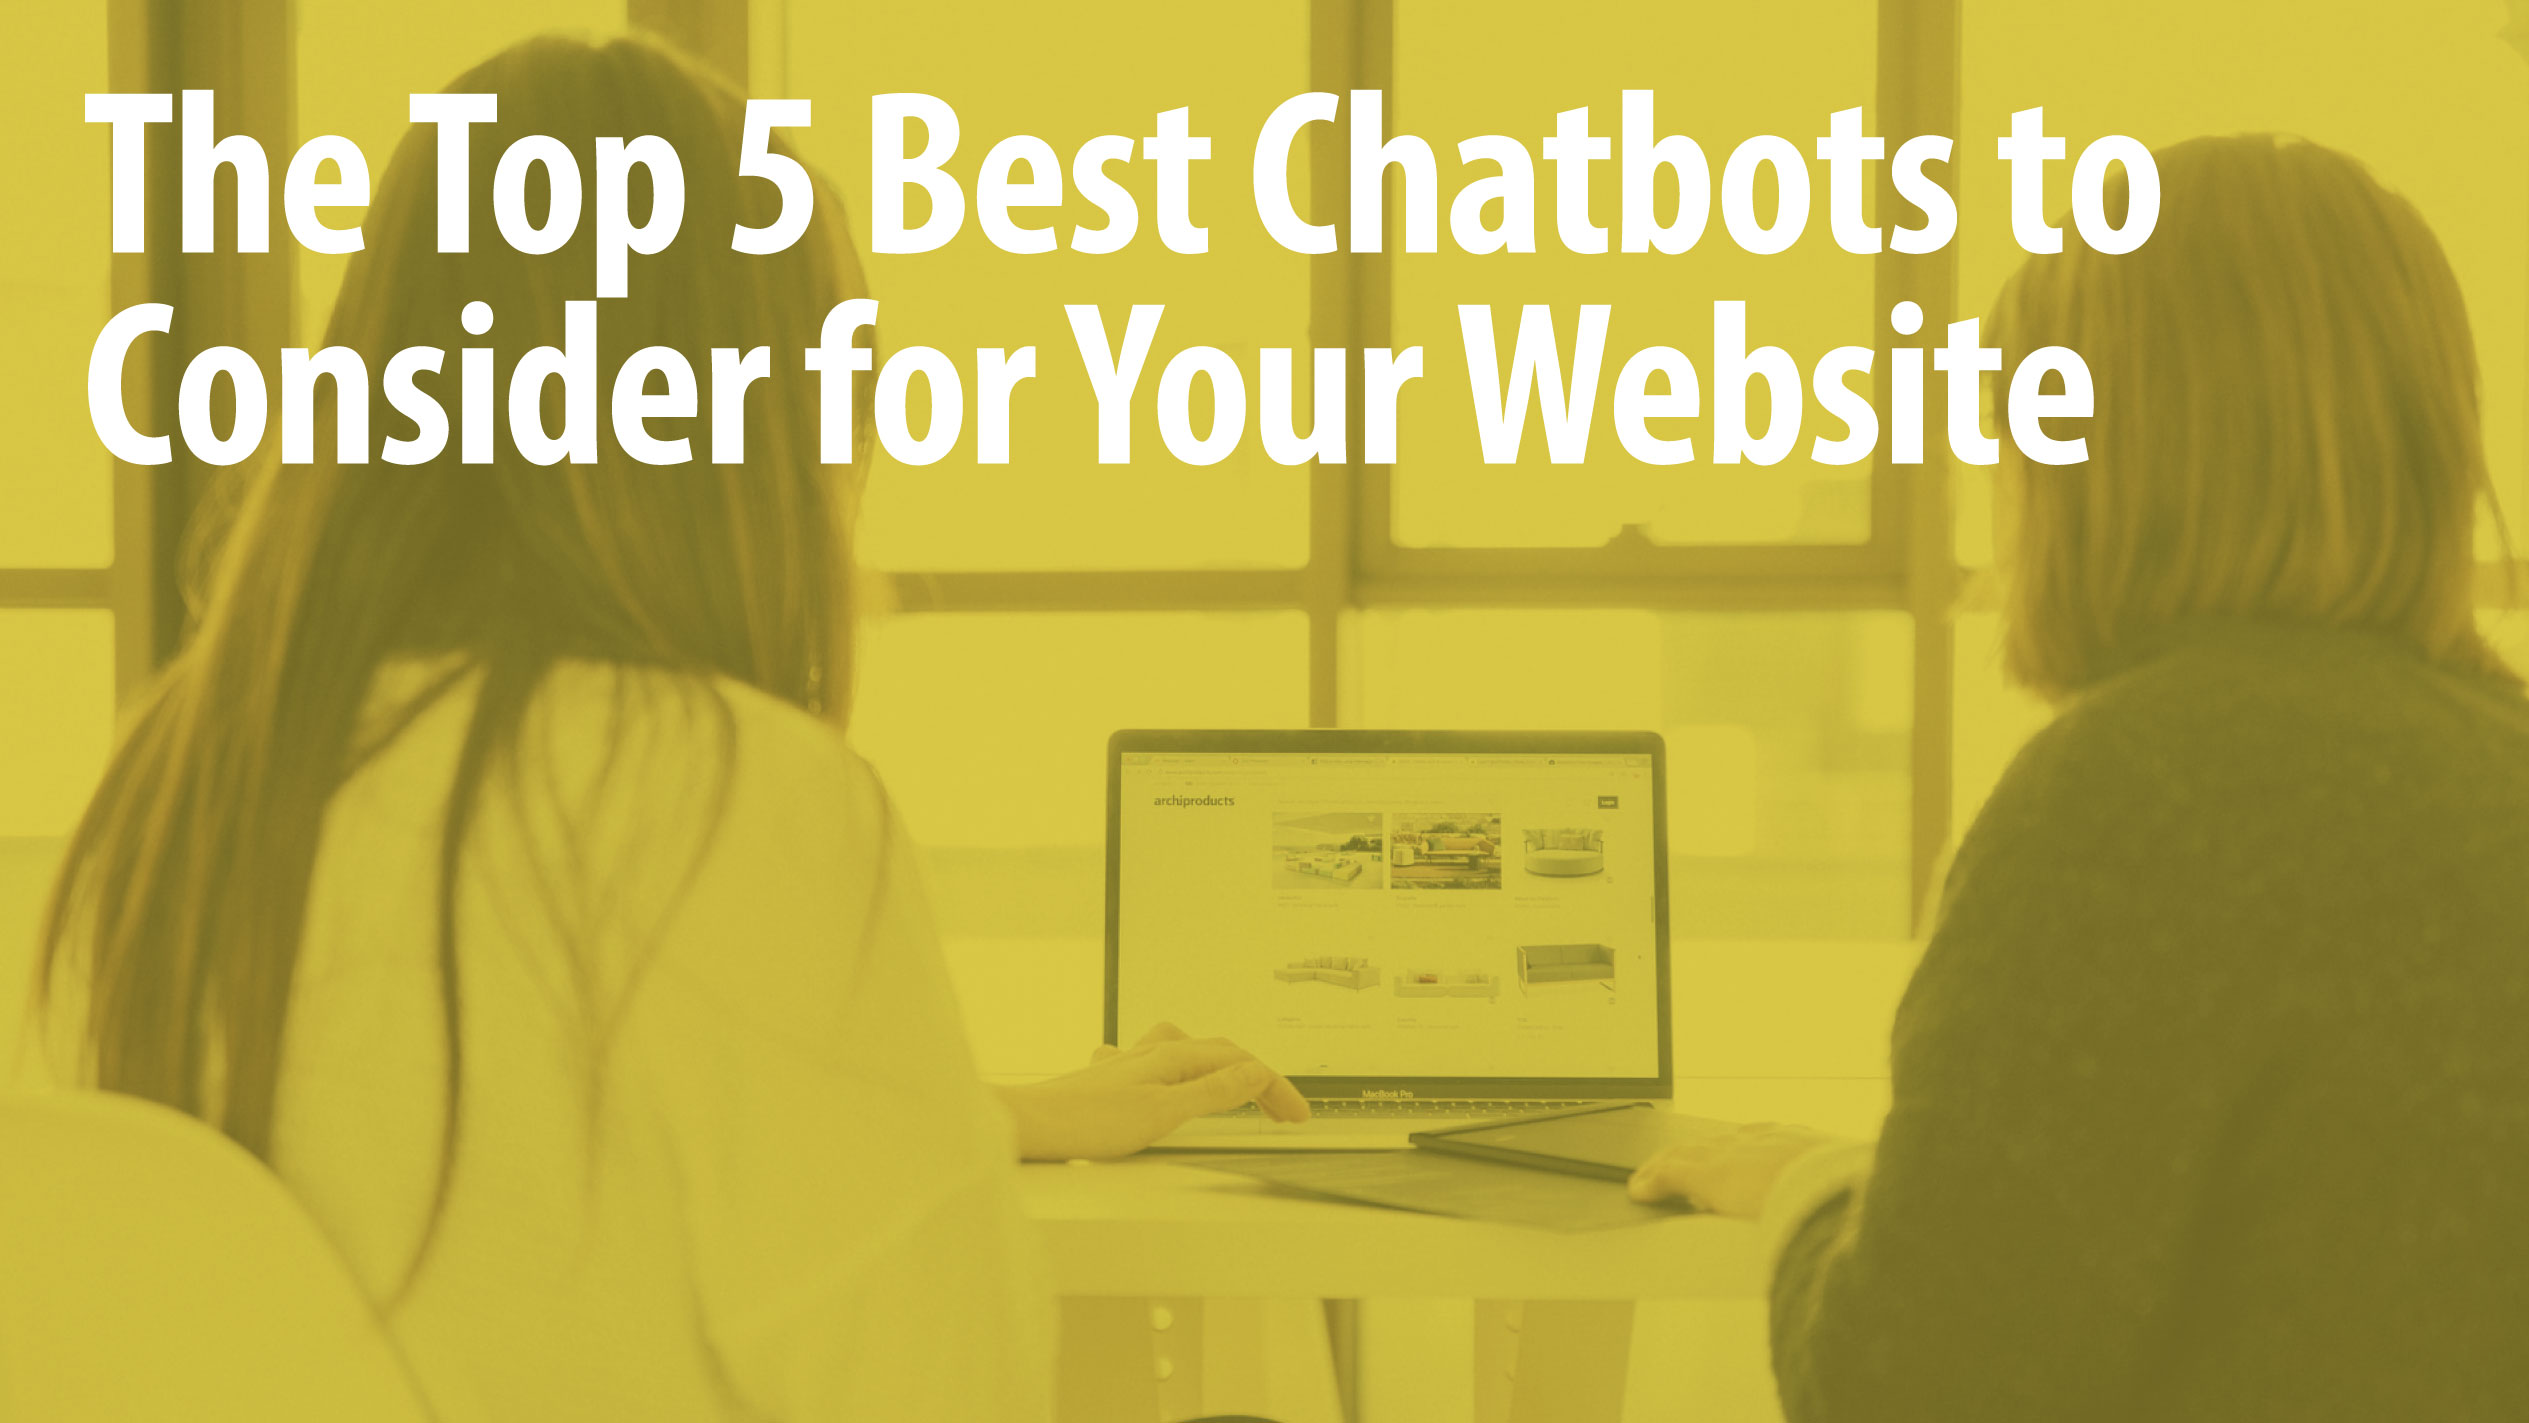 The Top 5 Best Chatbots to Consider for Your Website